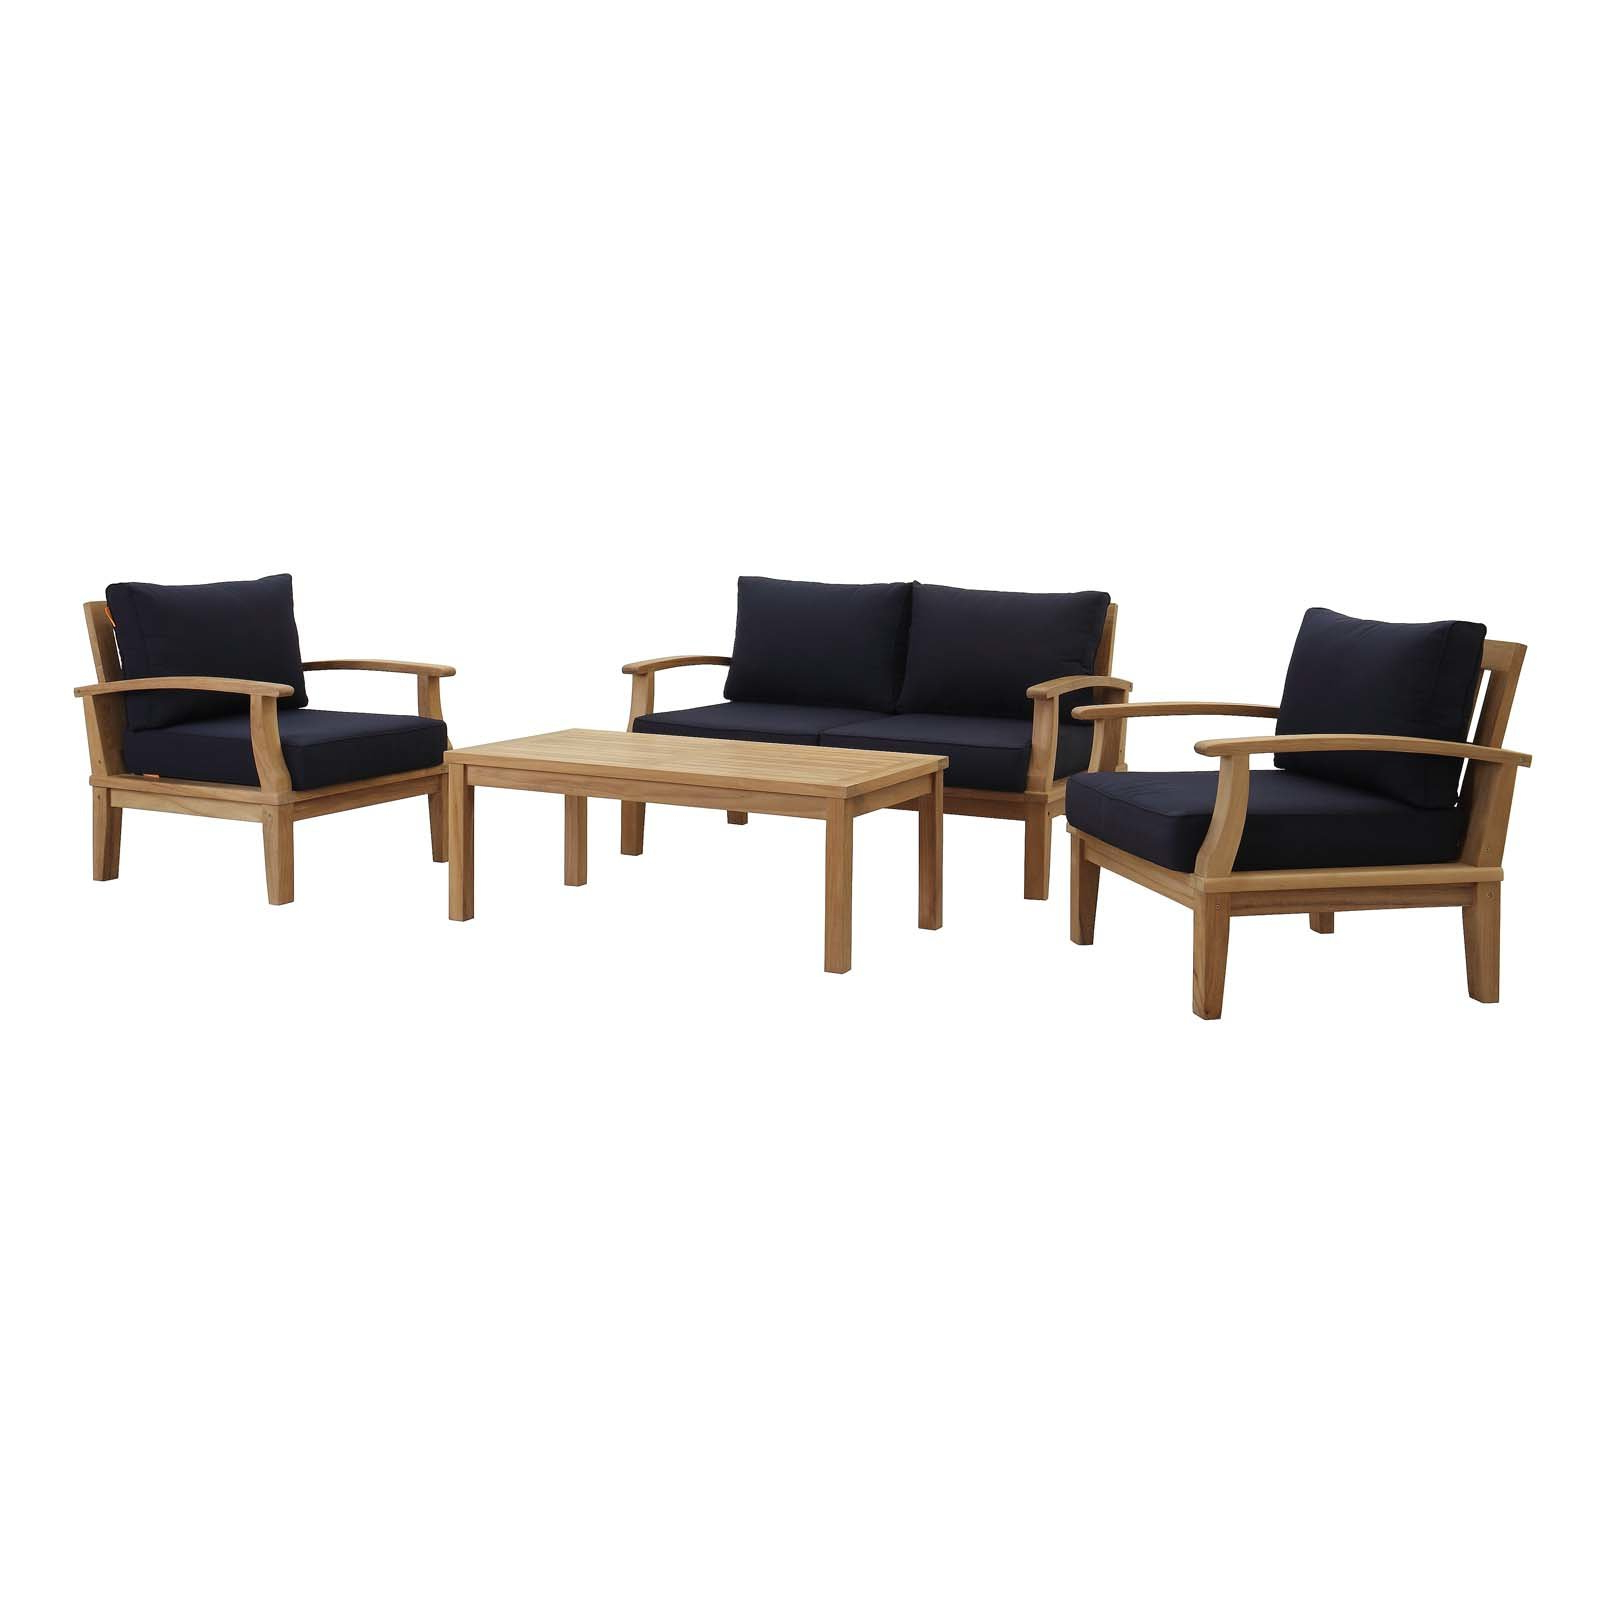 Elaina Teak Loveseats With Cushions In Well Liked Elaina 4 Piece Teak Sofa Seating Group With Cushions (View 5 of 20)